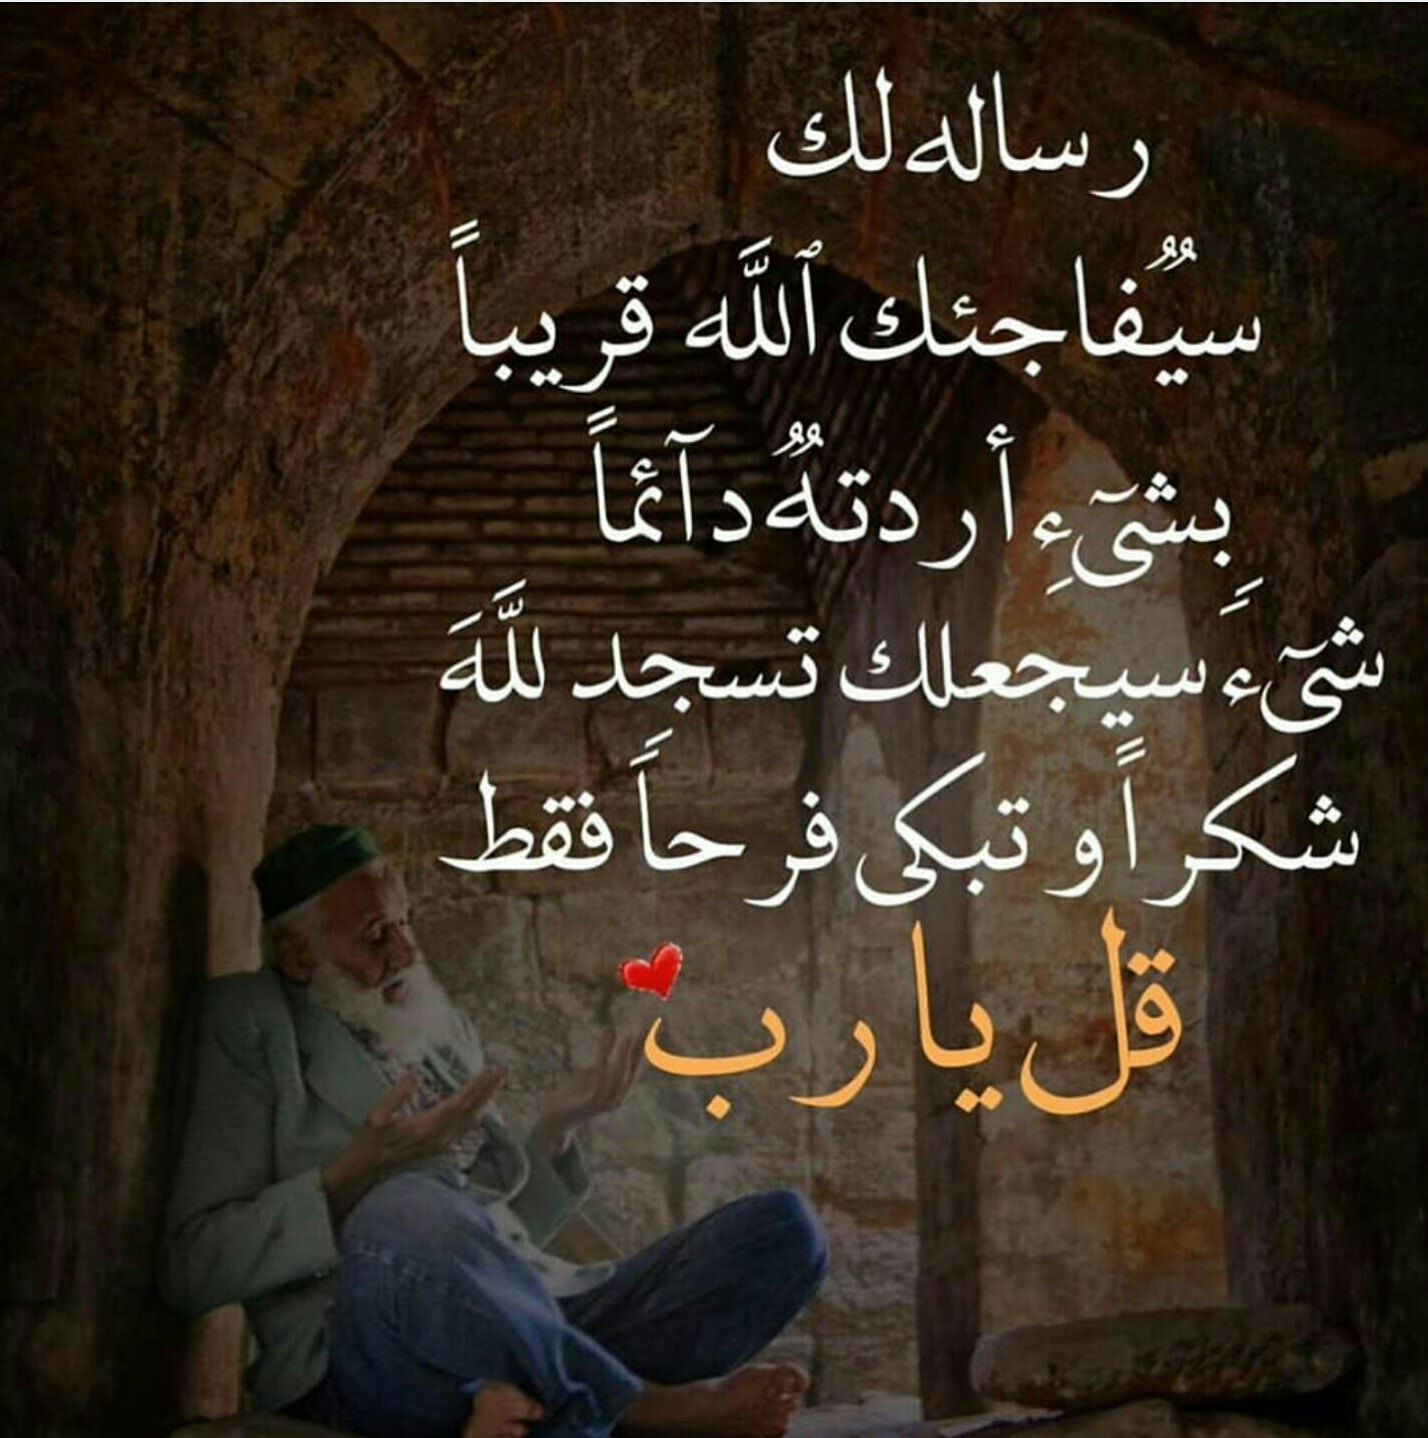 Pin By All 177 Smsm On مواعظ خواطر إسلامية Quran Quotes Inspirational Cool Words Islamic Quotes